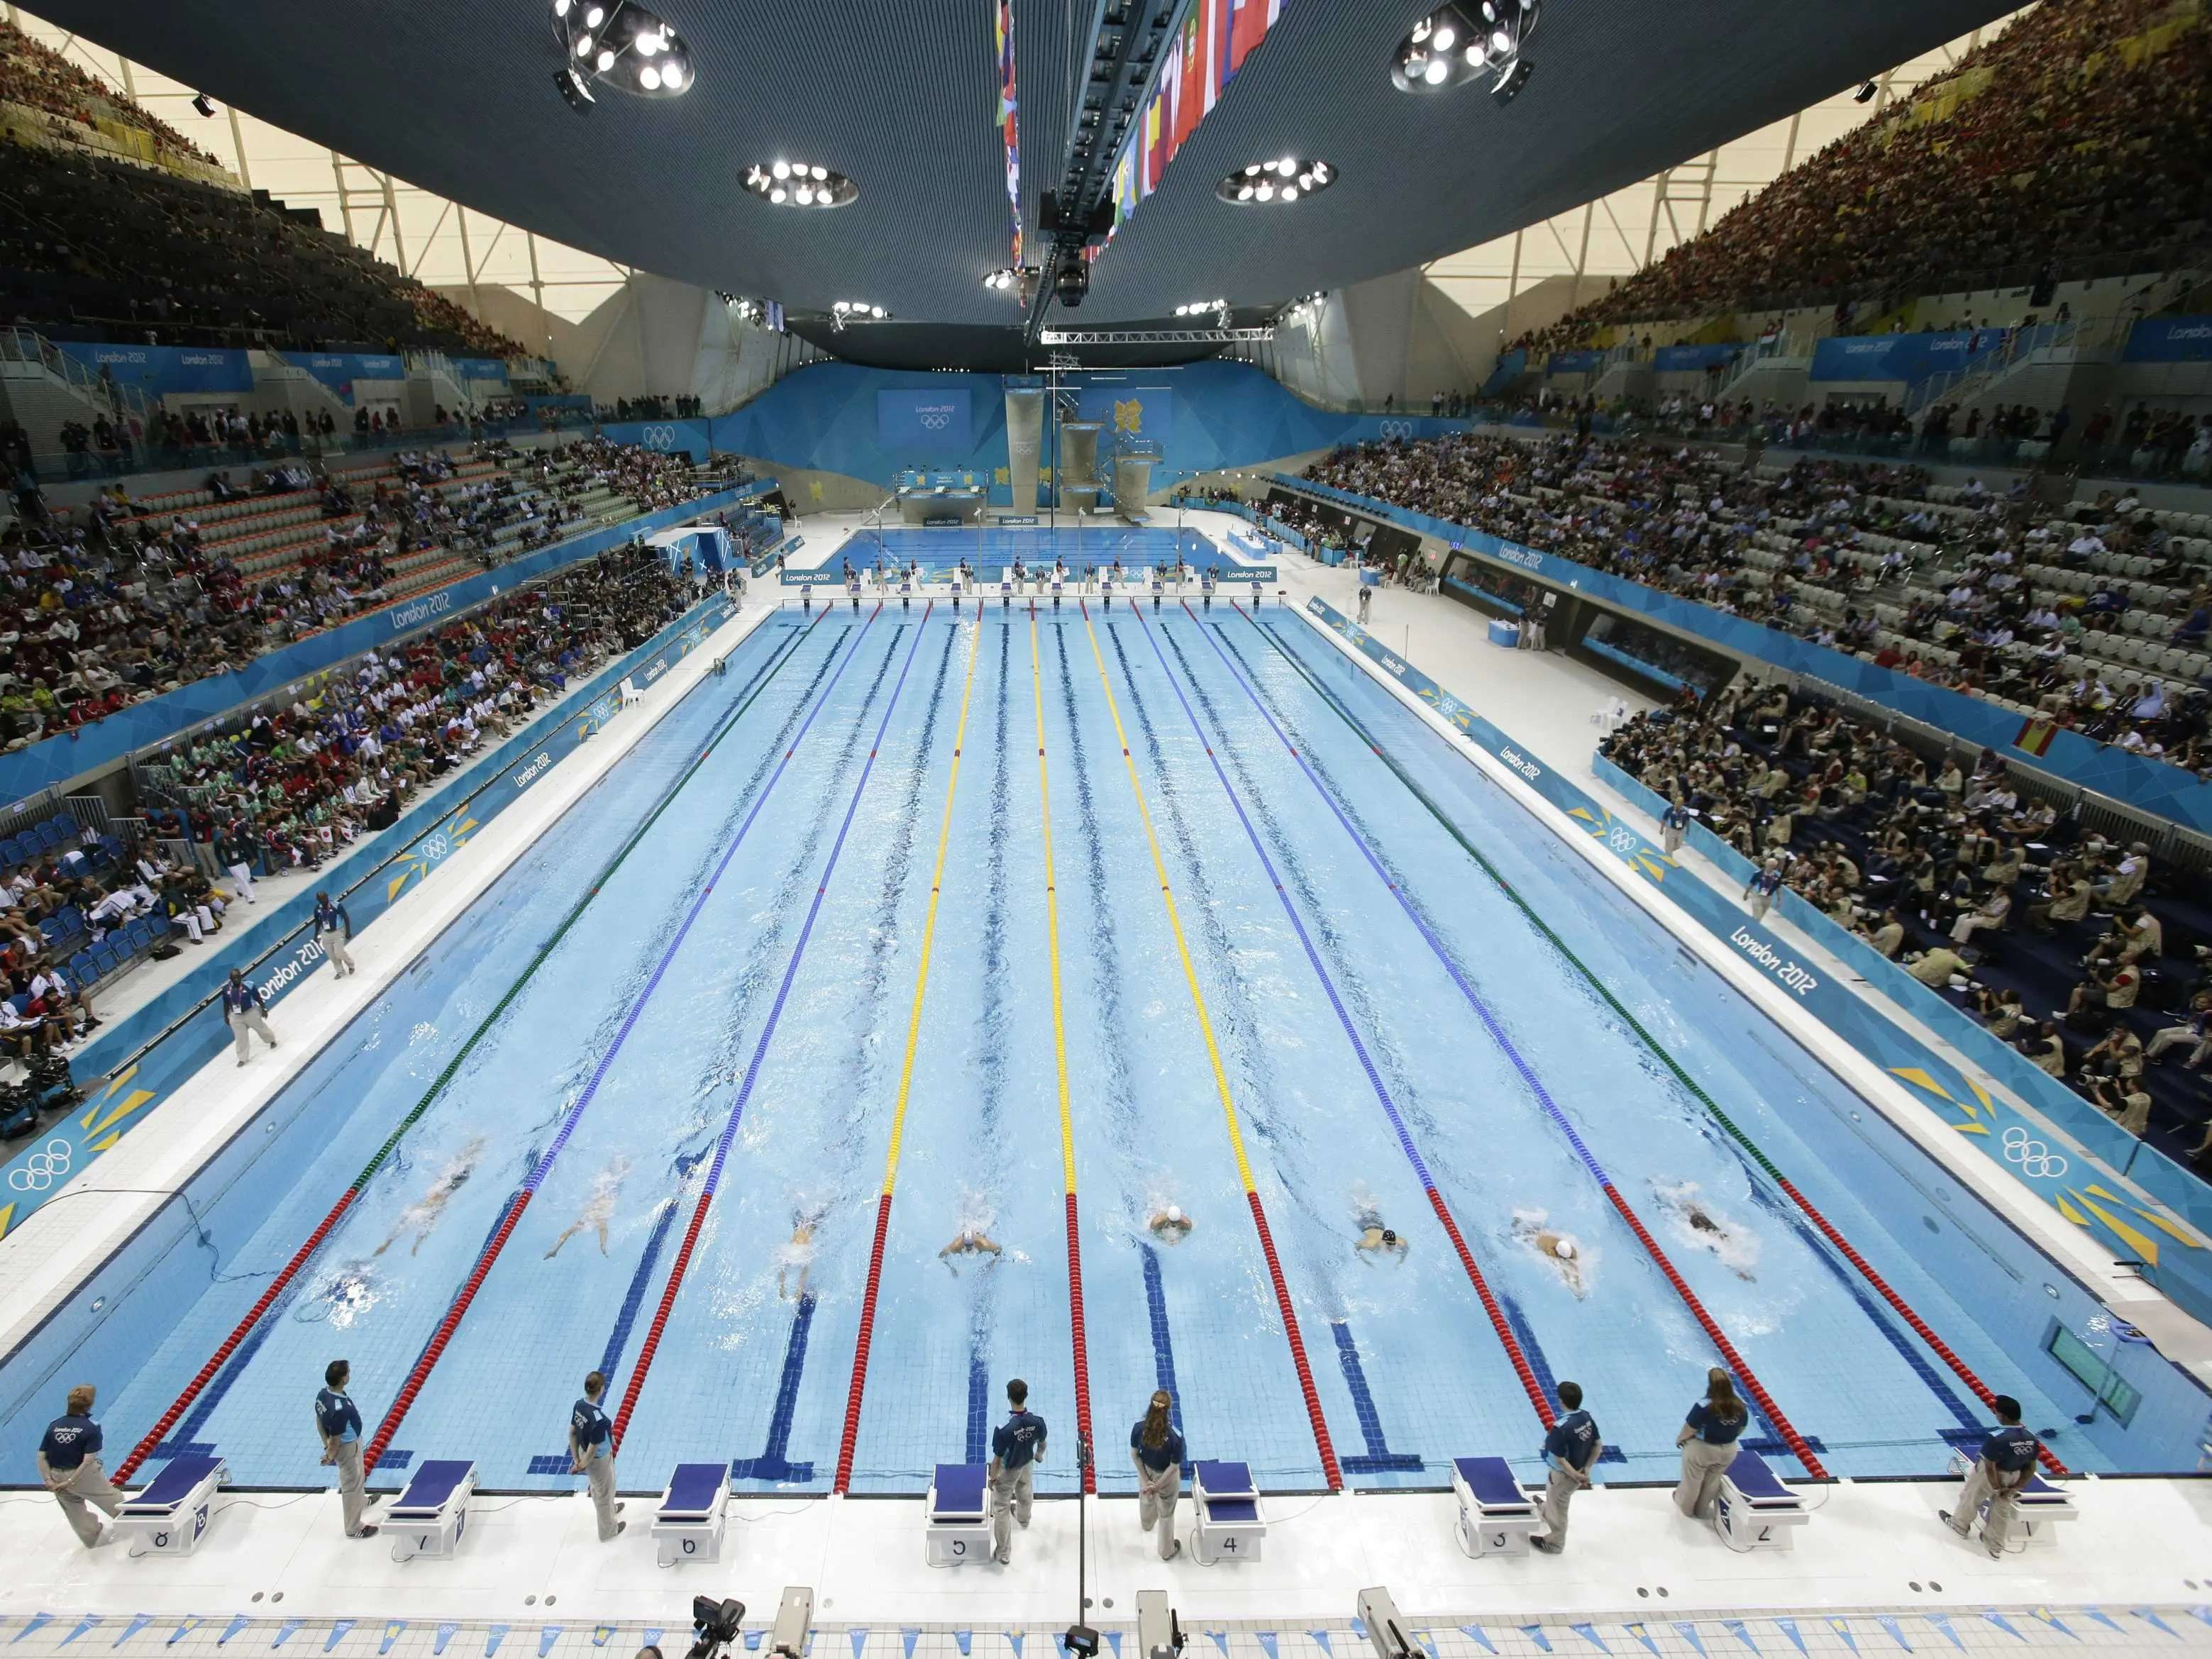 China's natural gas reserves are equivalent to about 1.24 billion Olympic-size swimming pools.